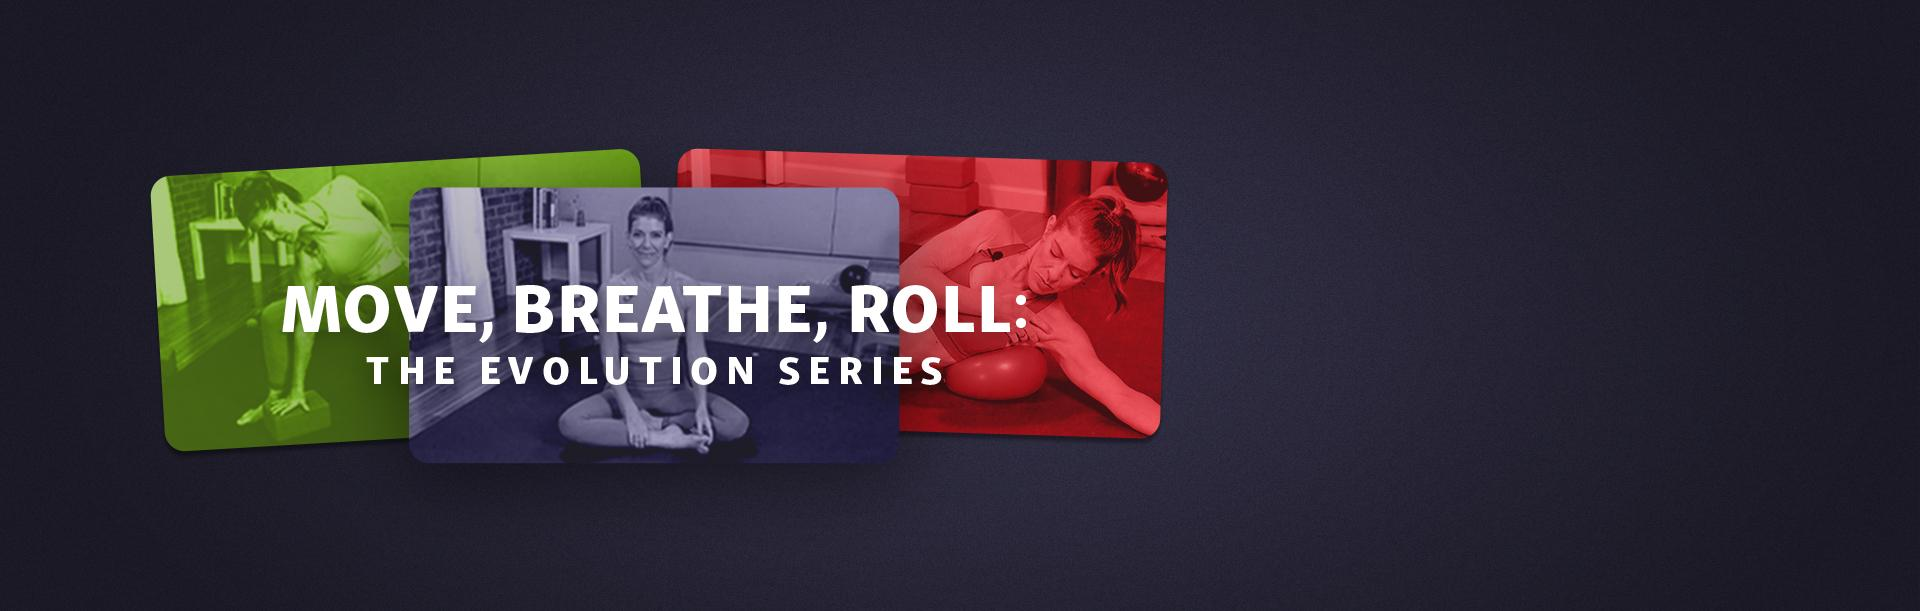 Move, Breathe, Roll - The Evolution Series